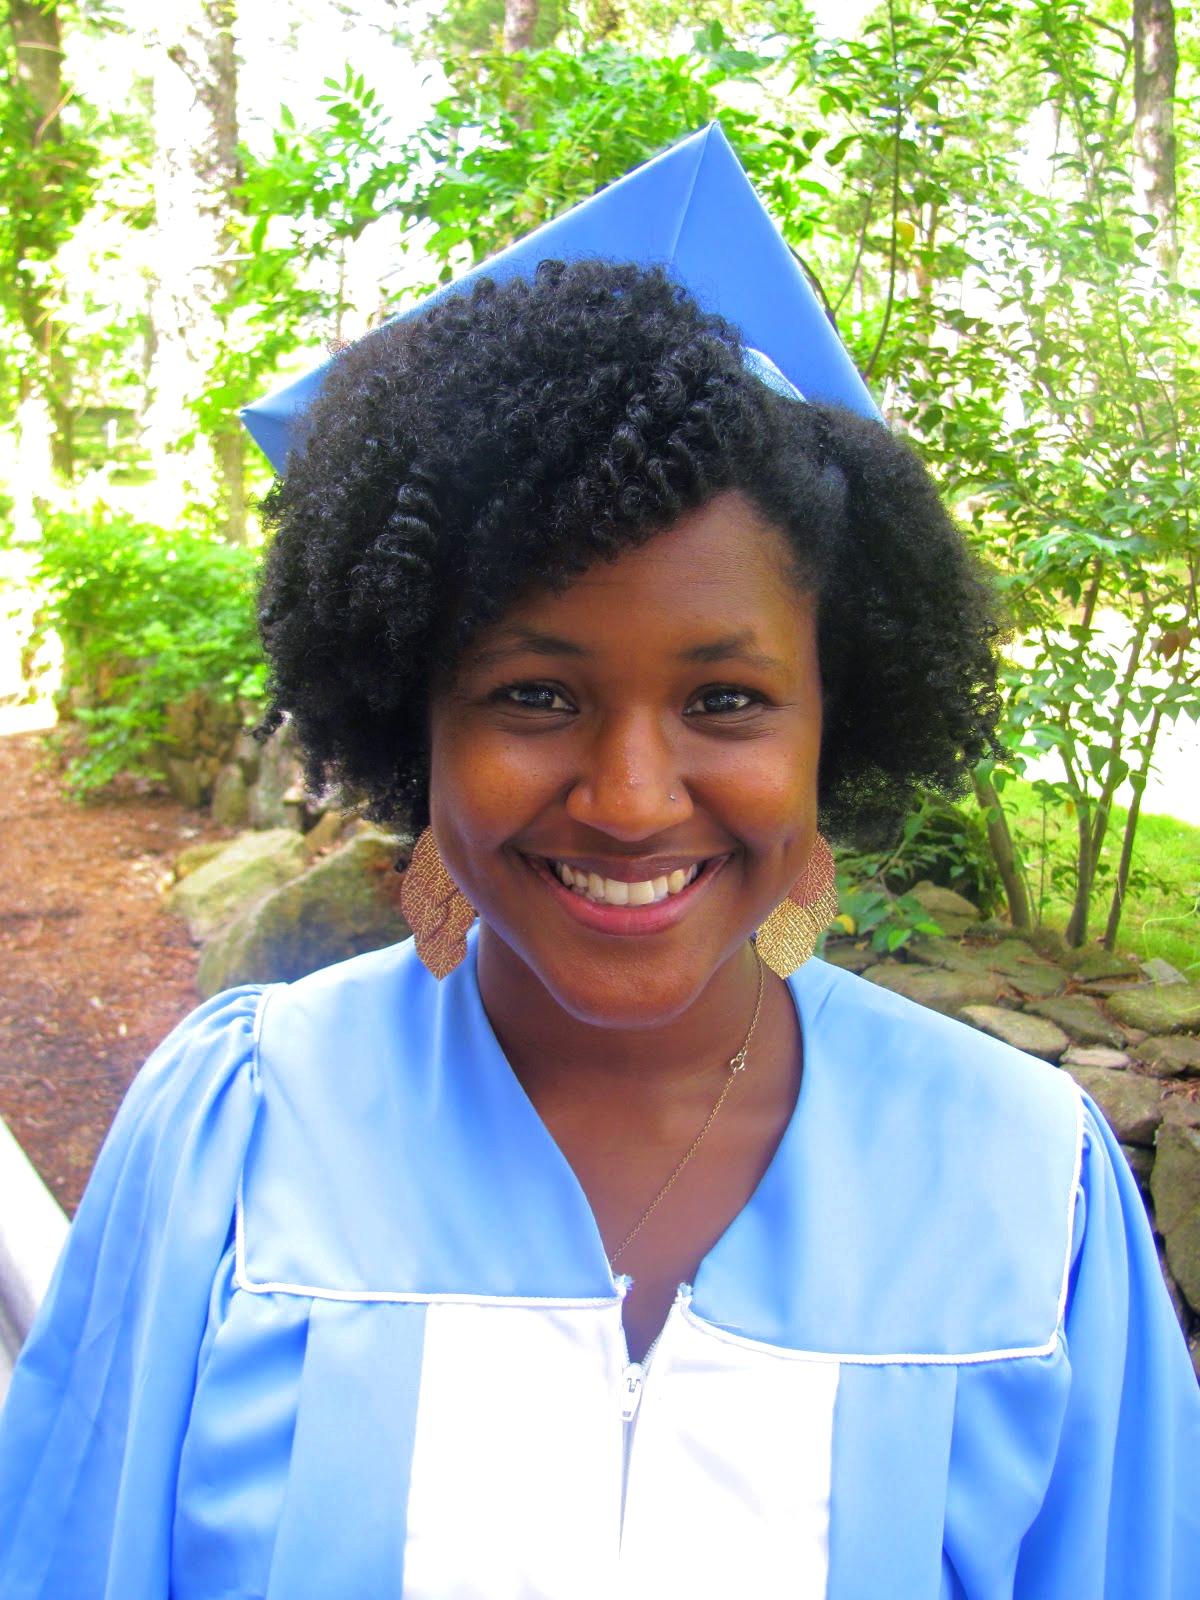 How To Wear Graduation Cap With Natural Hair